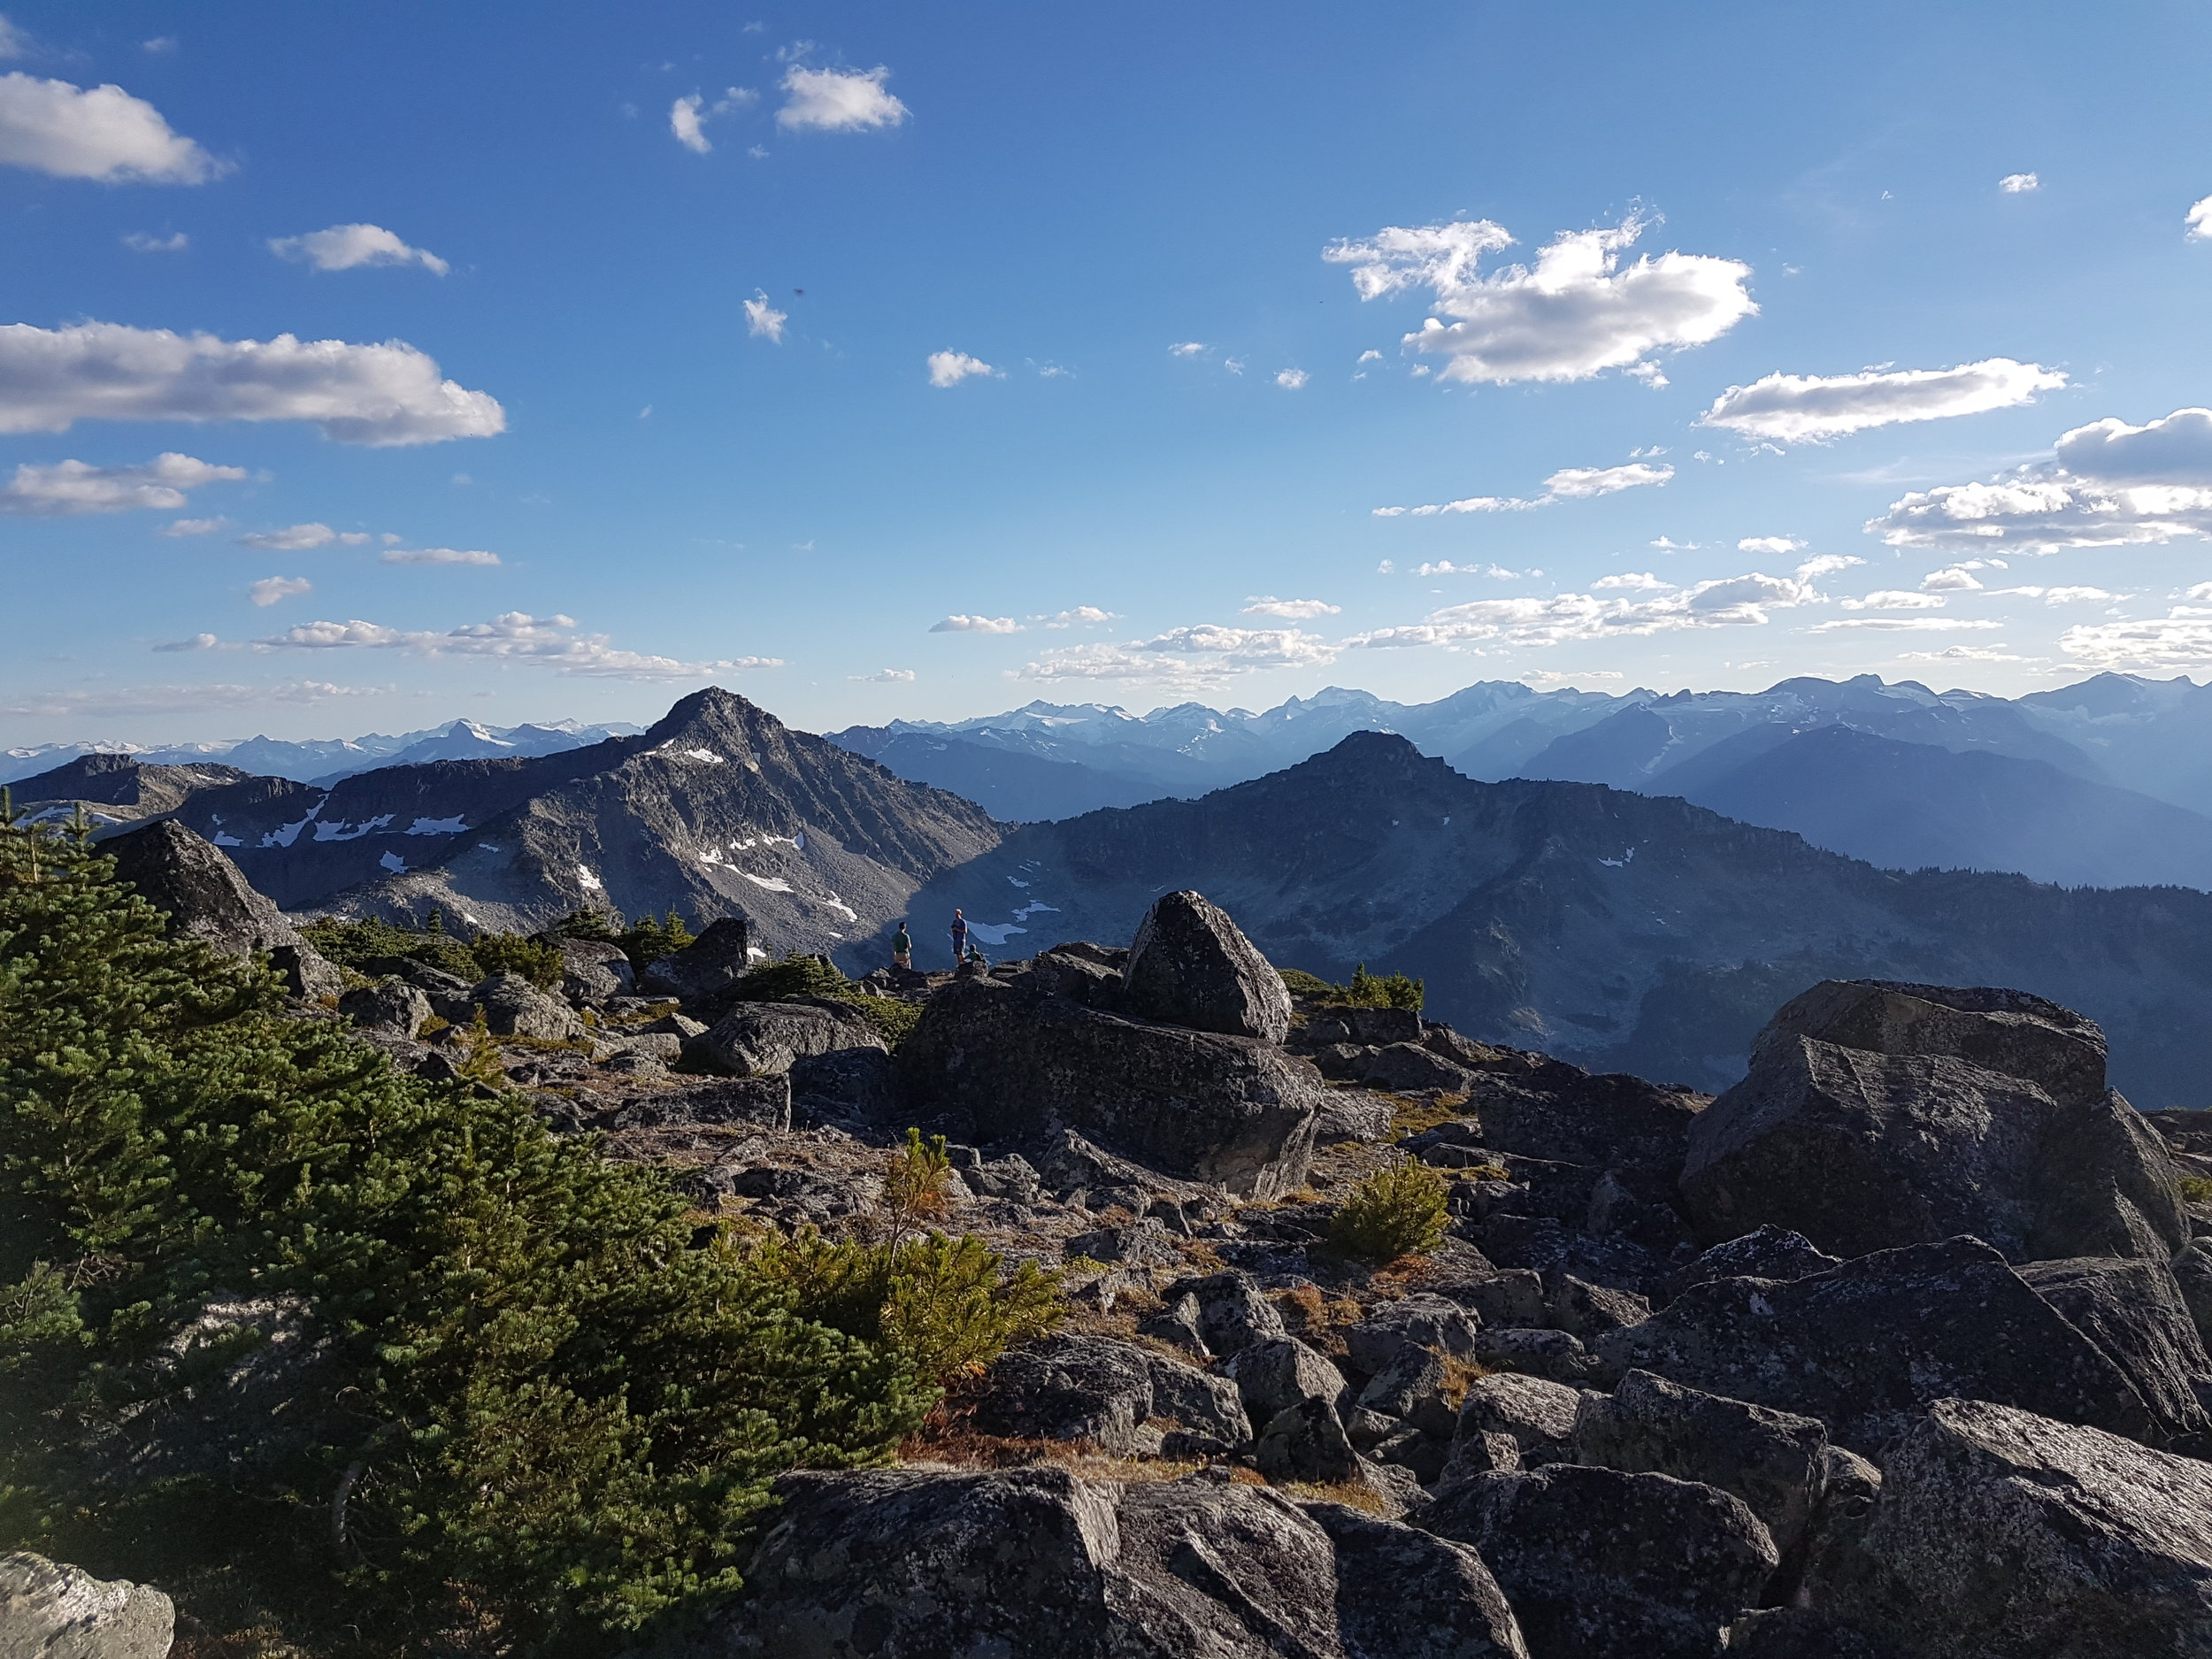 Incredible view from the top of Joffre Lakes Provincial Park on our private hiking tour